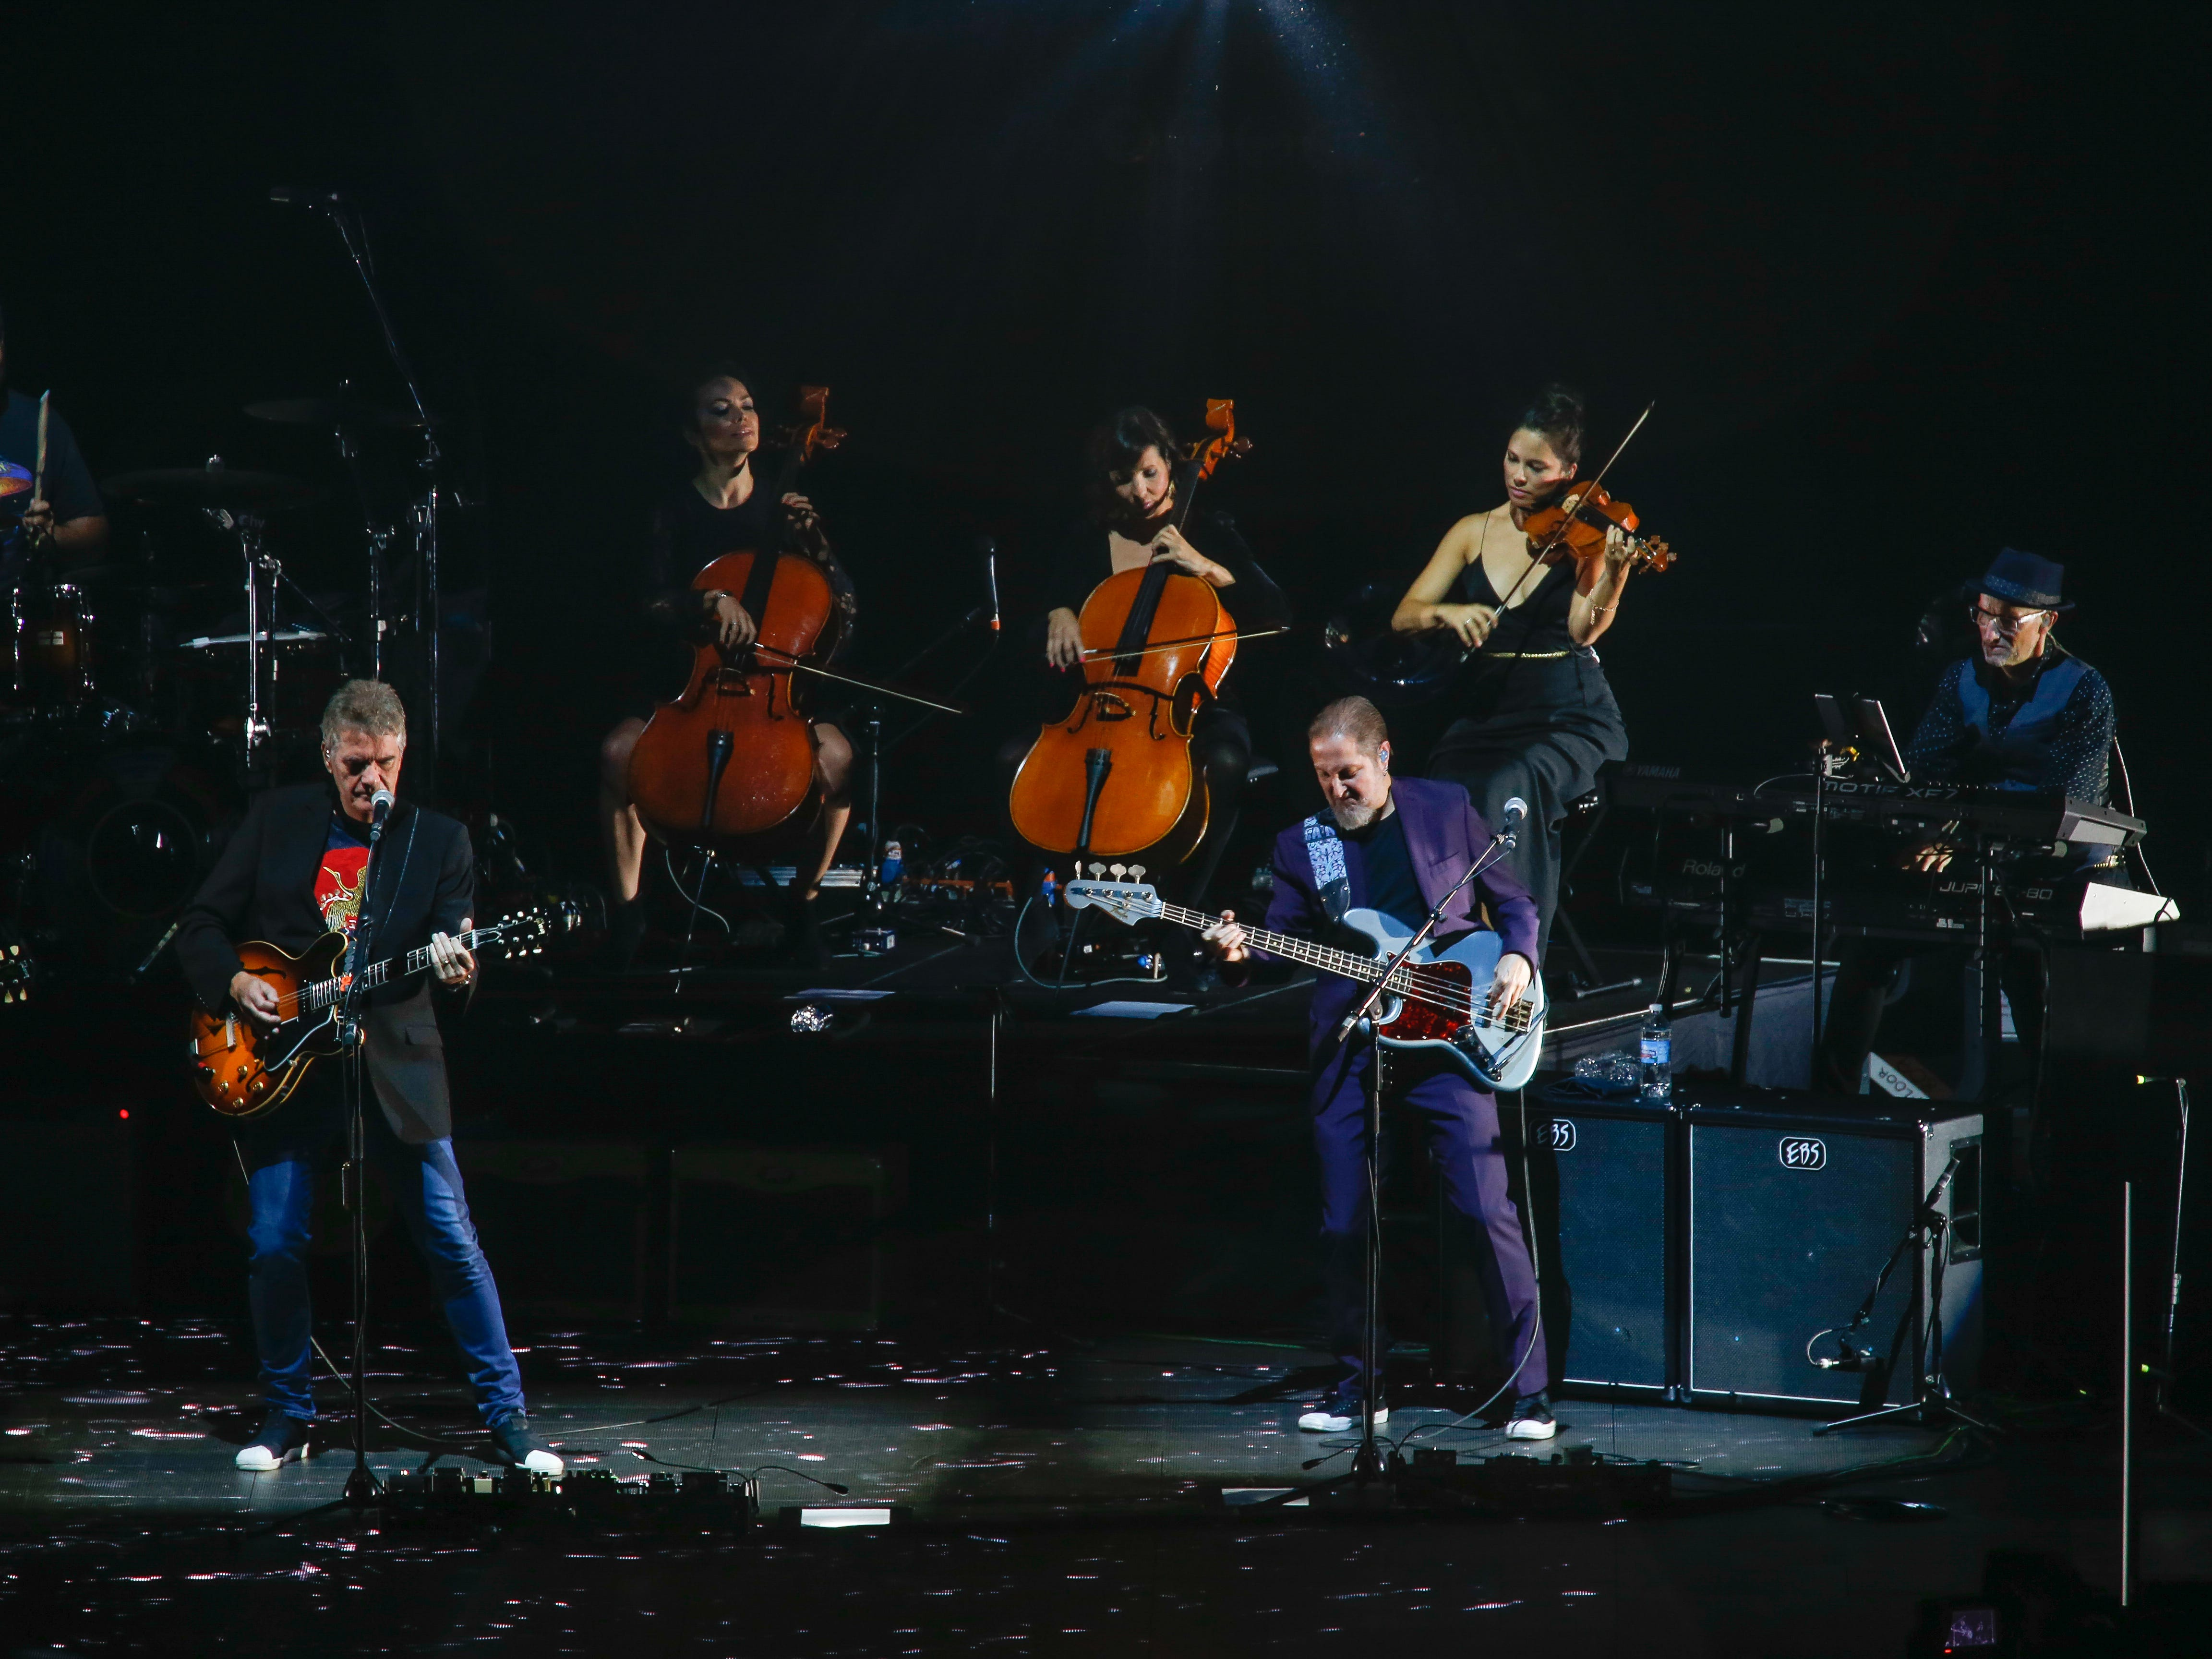 Guitarist Mike Stevens, left, and Lee Pomeroy, right, with ELO drummer Donovan Hepburn, cellists Amy Langley and Jessica Cox, violinist Rosie Langley and keyboard player Steve Turner.